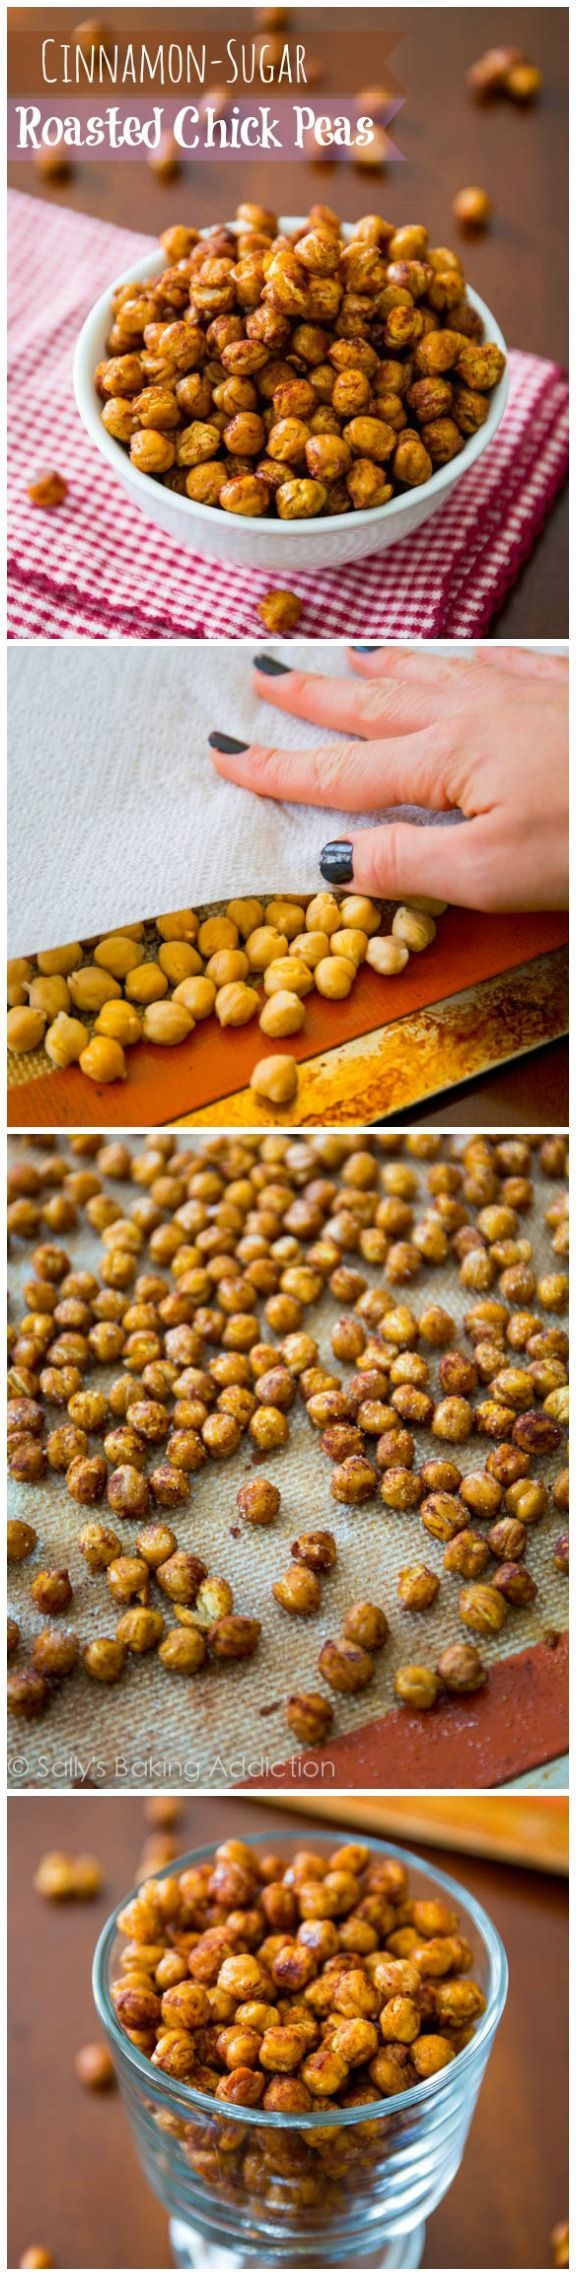 Chickpeas roasted to cinnamon-spiced perfection. Only 4 ingredients required. Crunchy, sweet, healthy, and definitely irresistible!